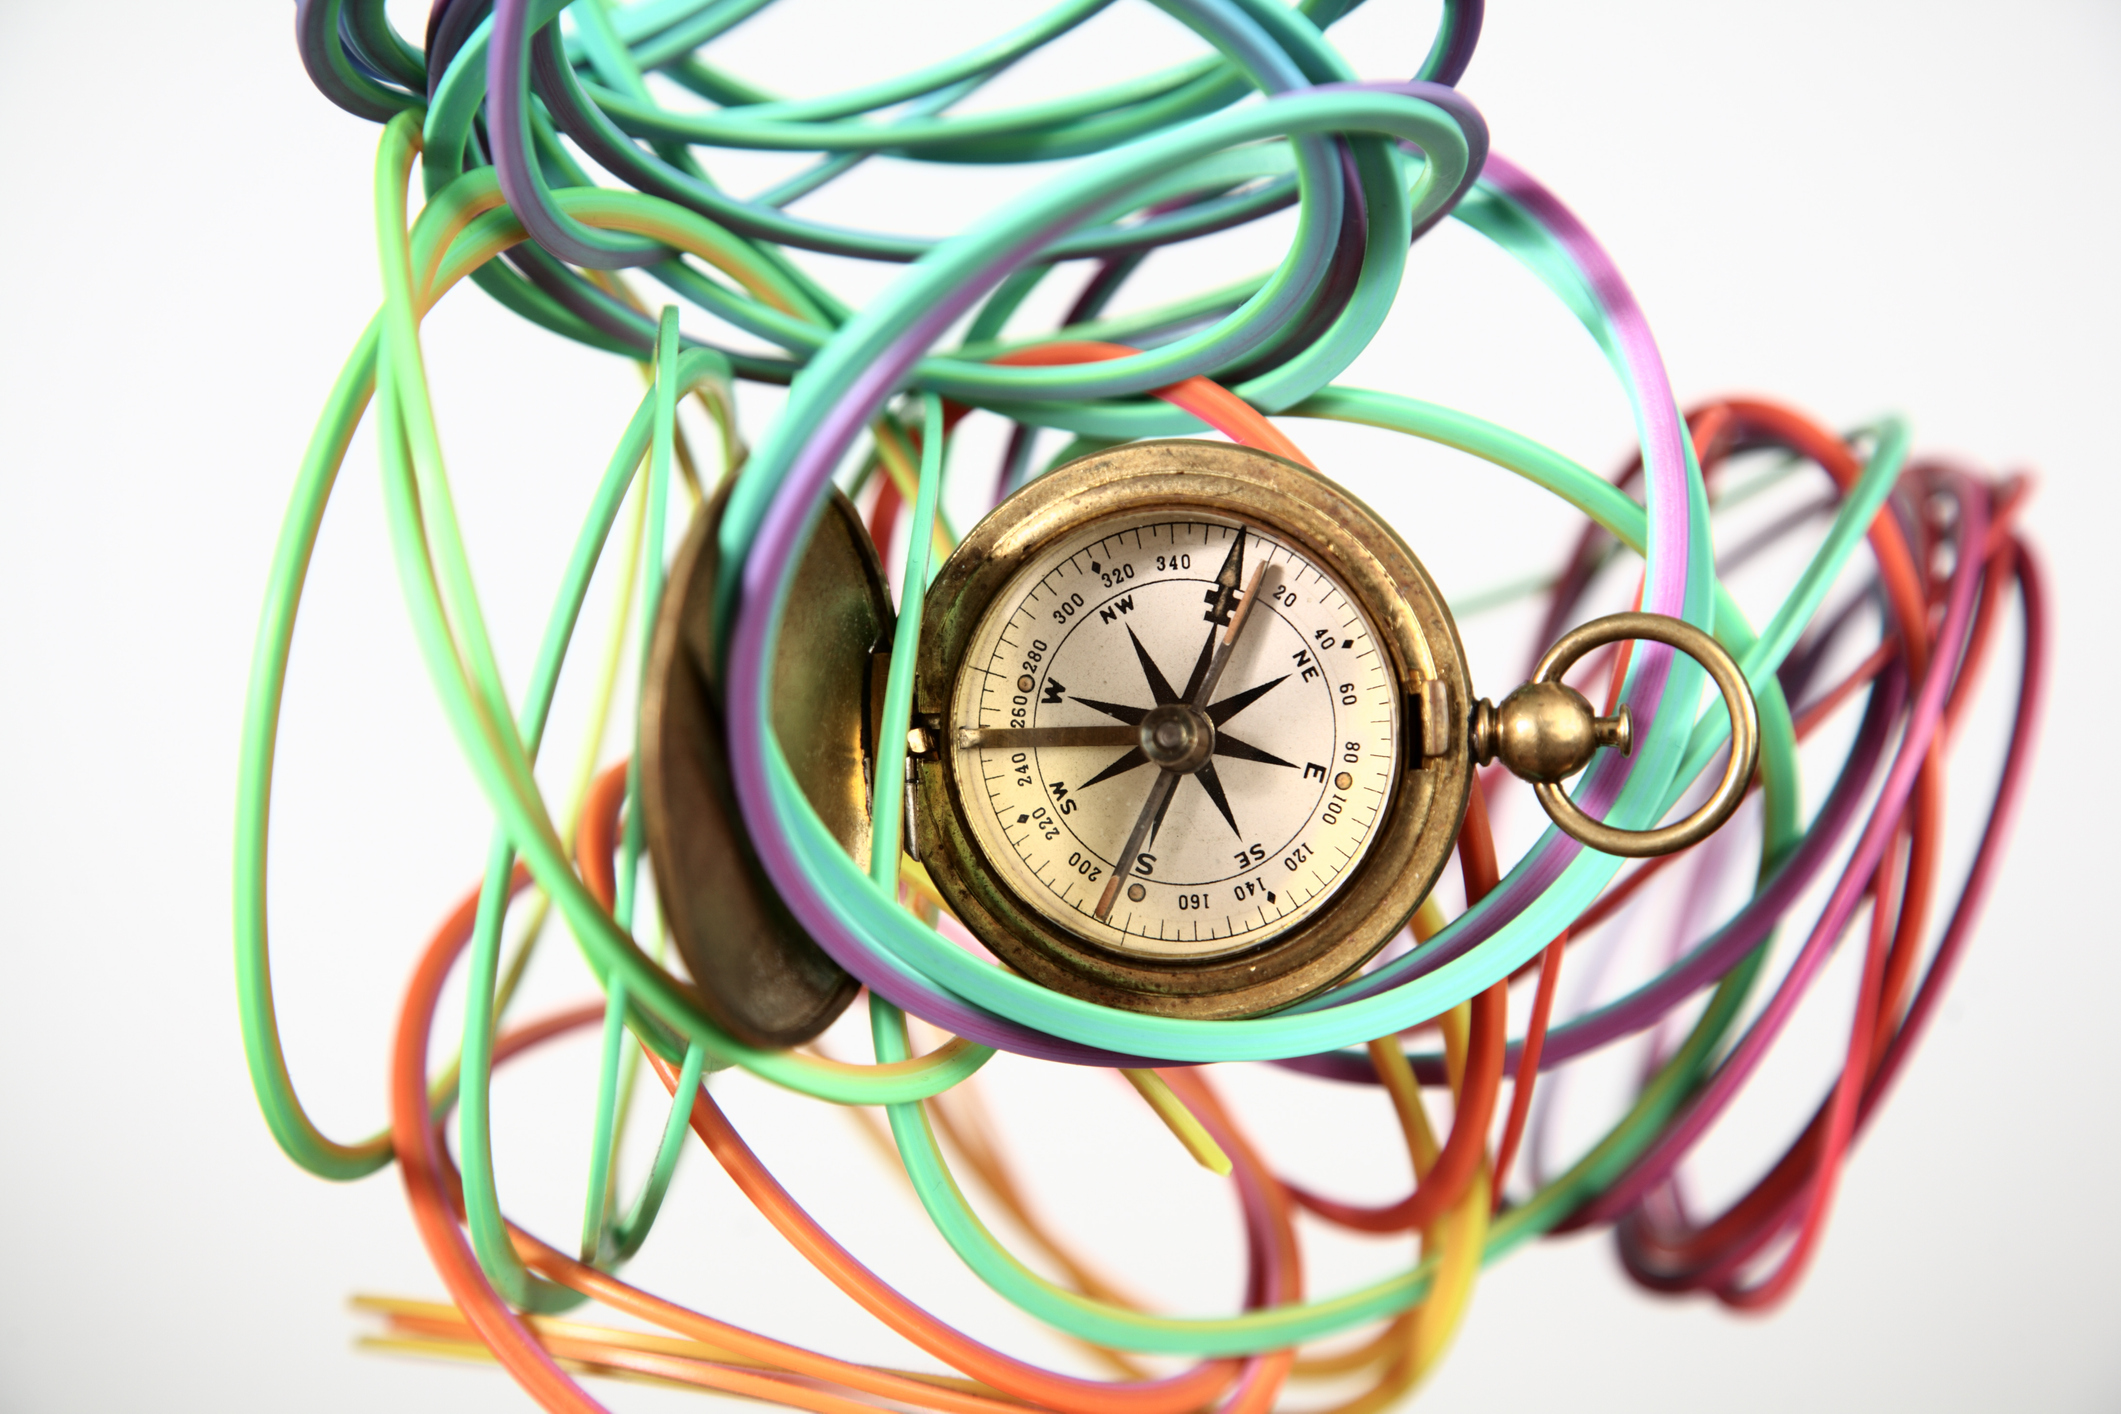 Vintage brass pocket compass in a colorful circular tangled plastic strand.